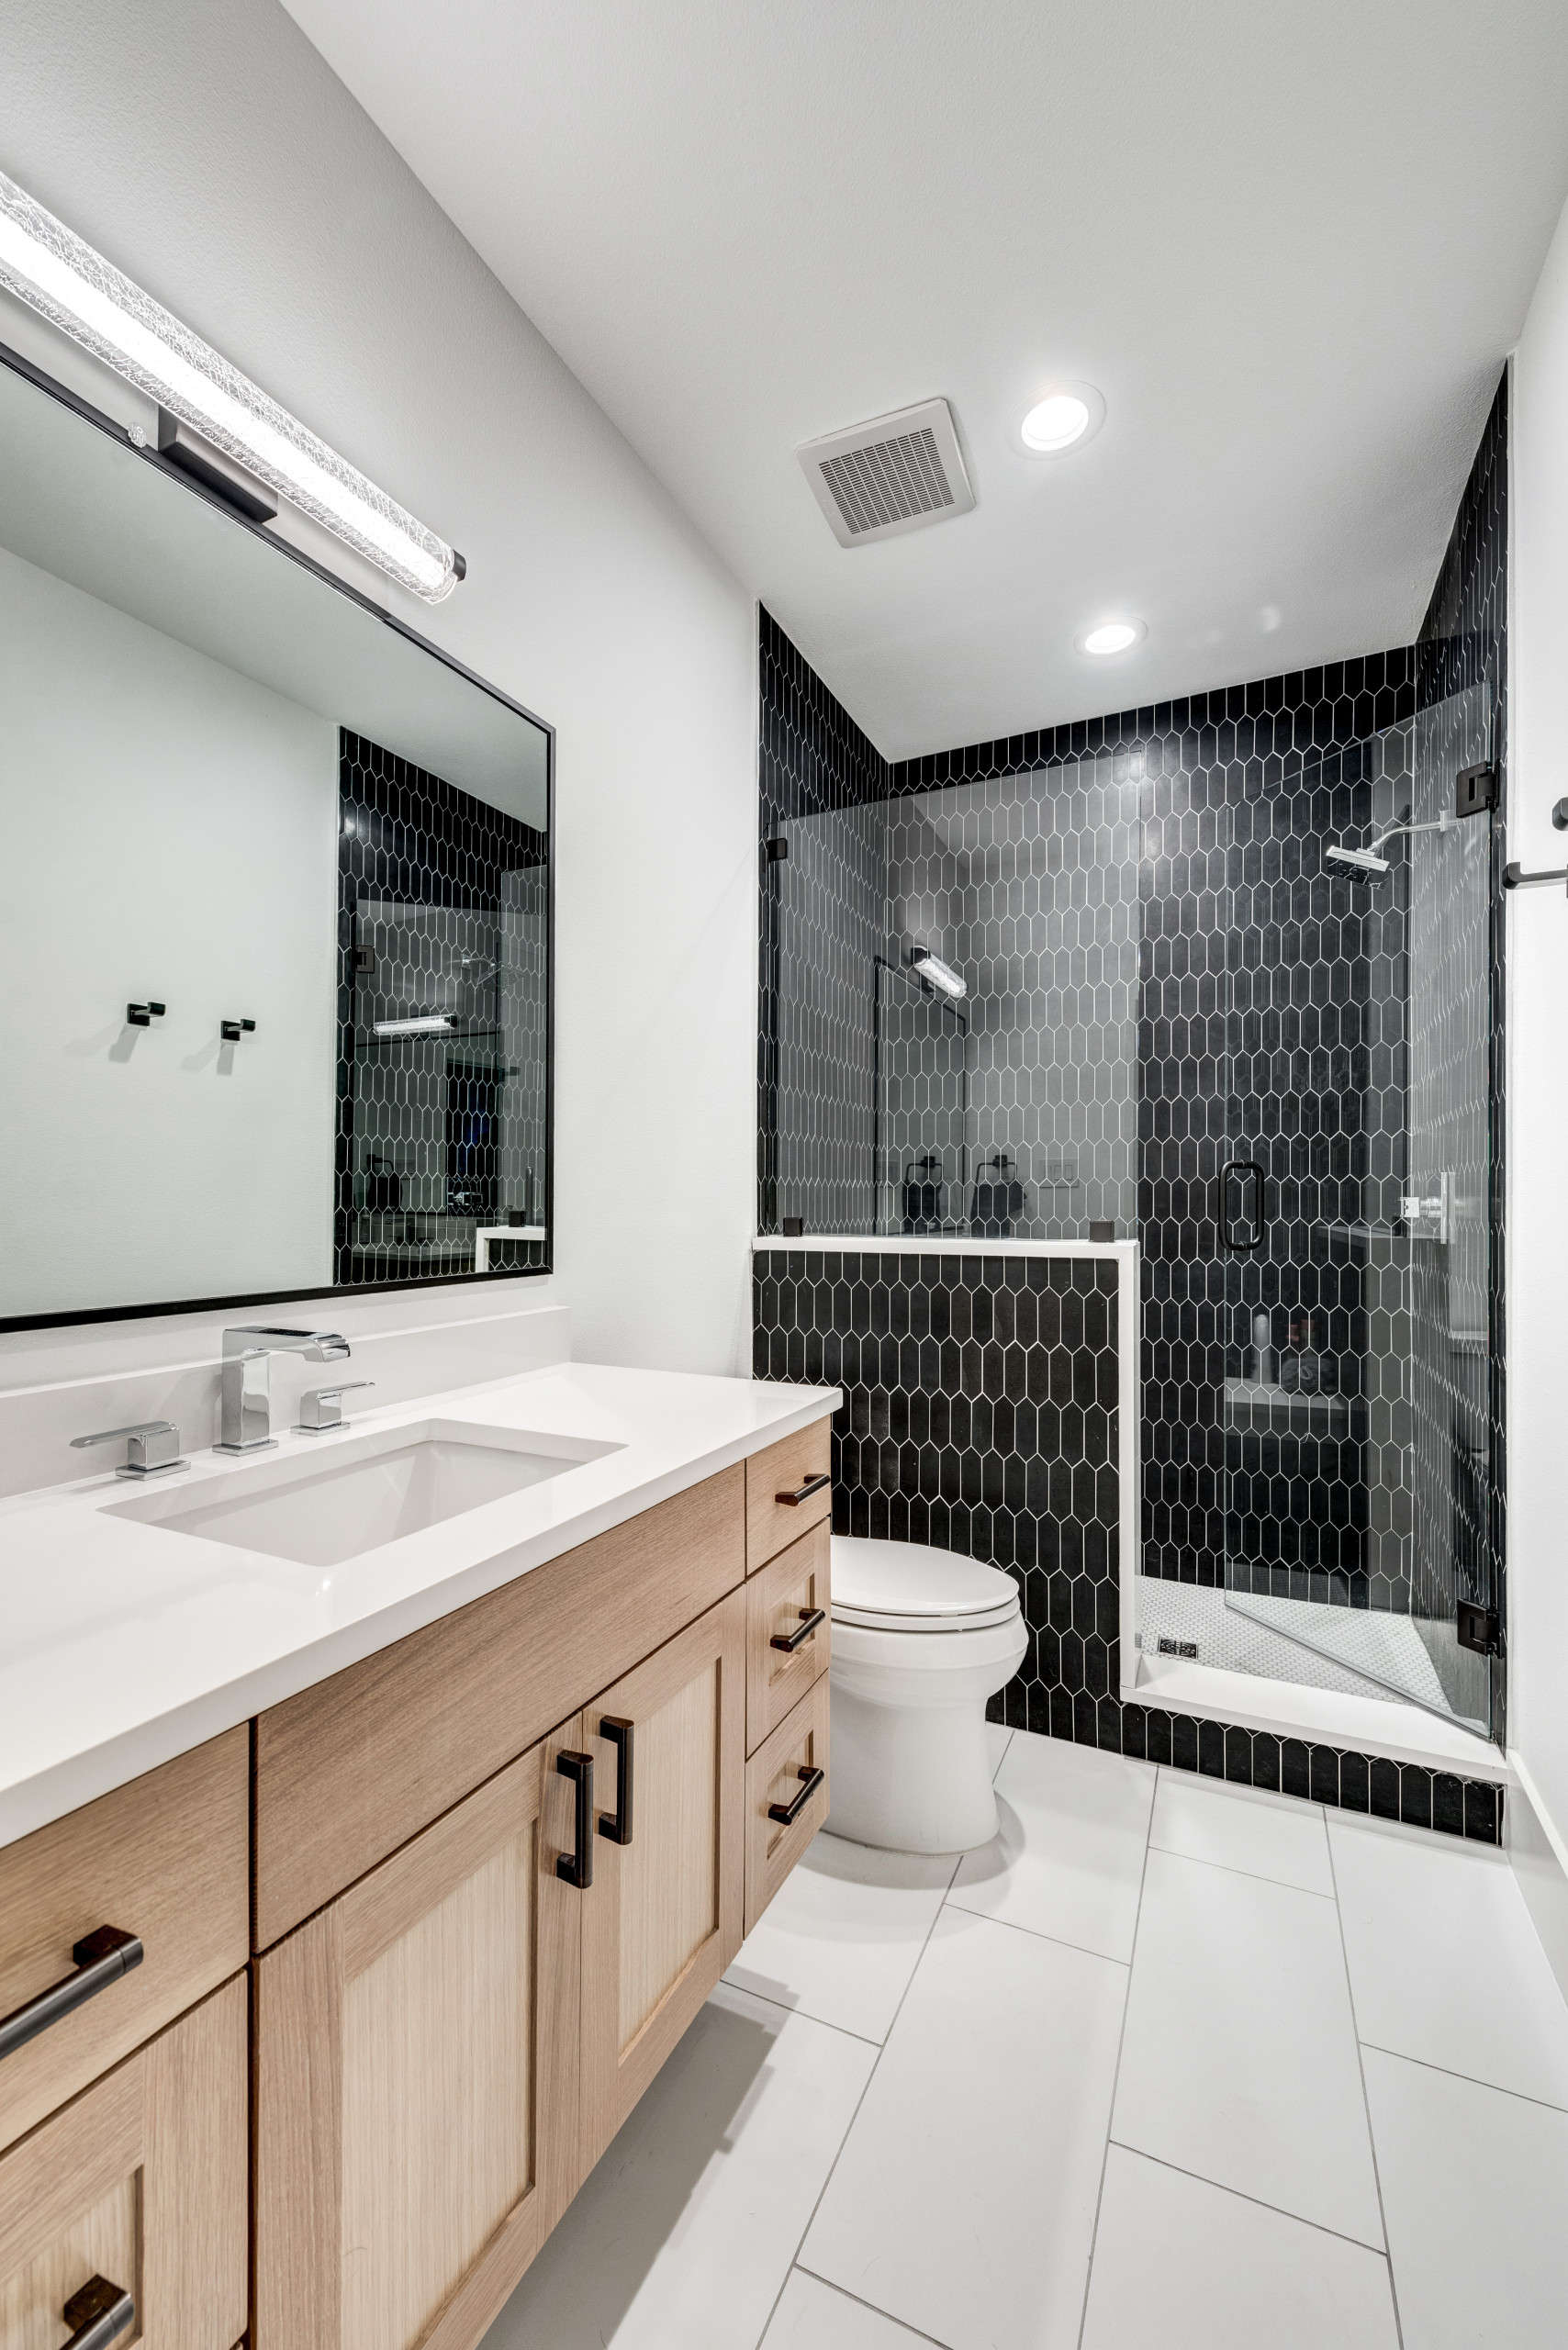 75 Beautiful Black Tile Bathroom Pictures & Ideas - January, 2021 | Houzz